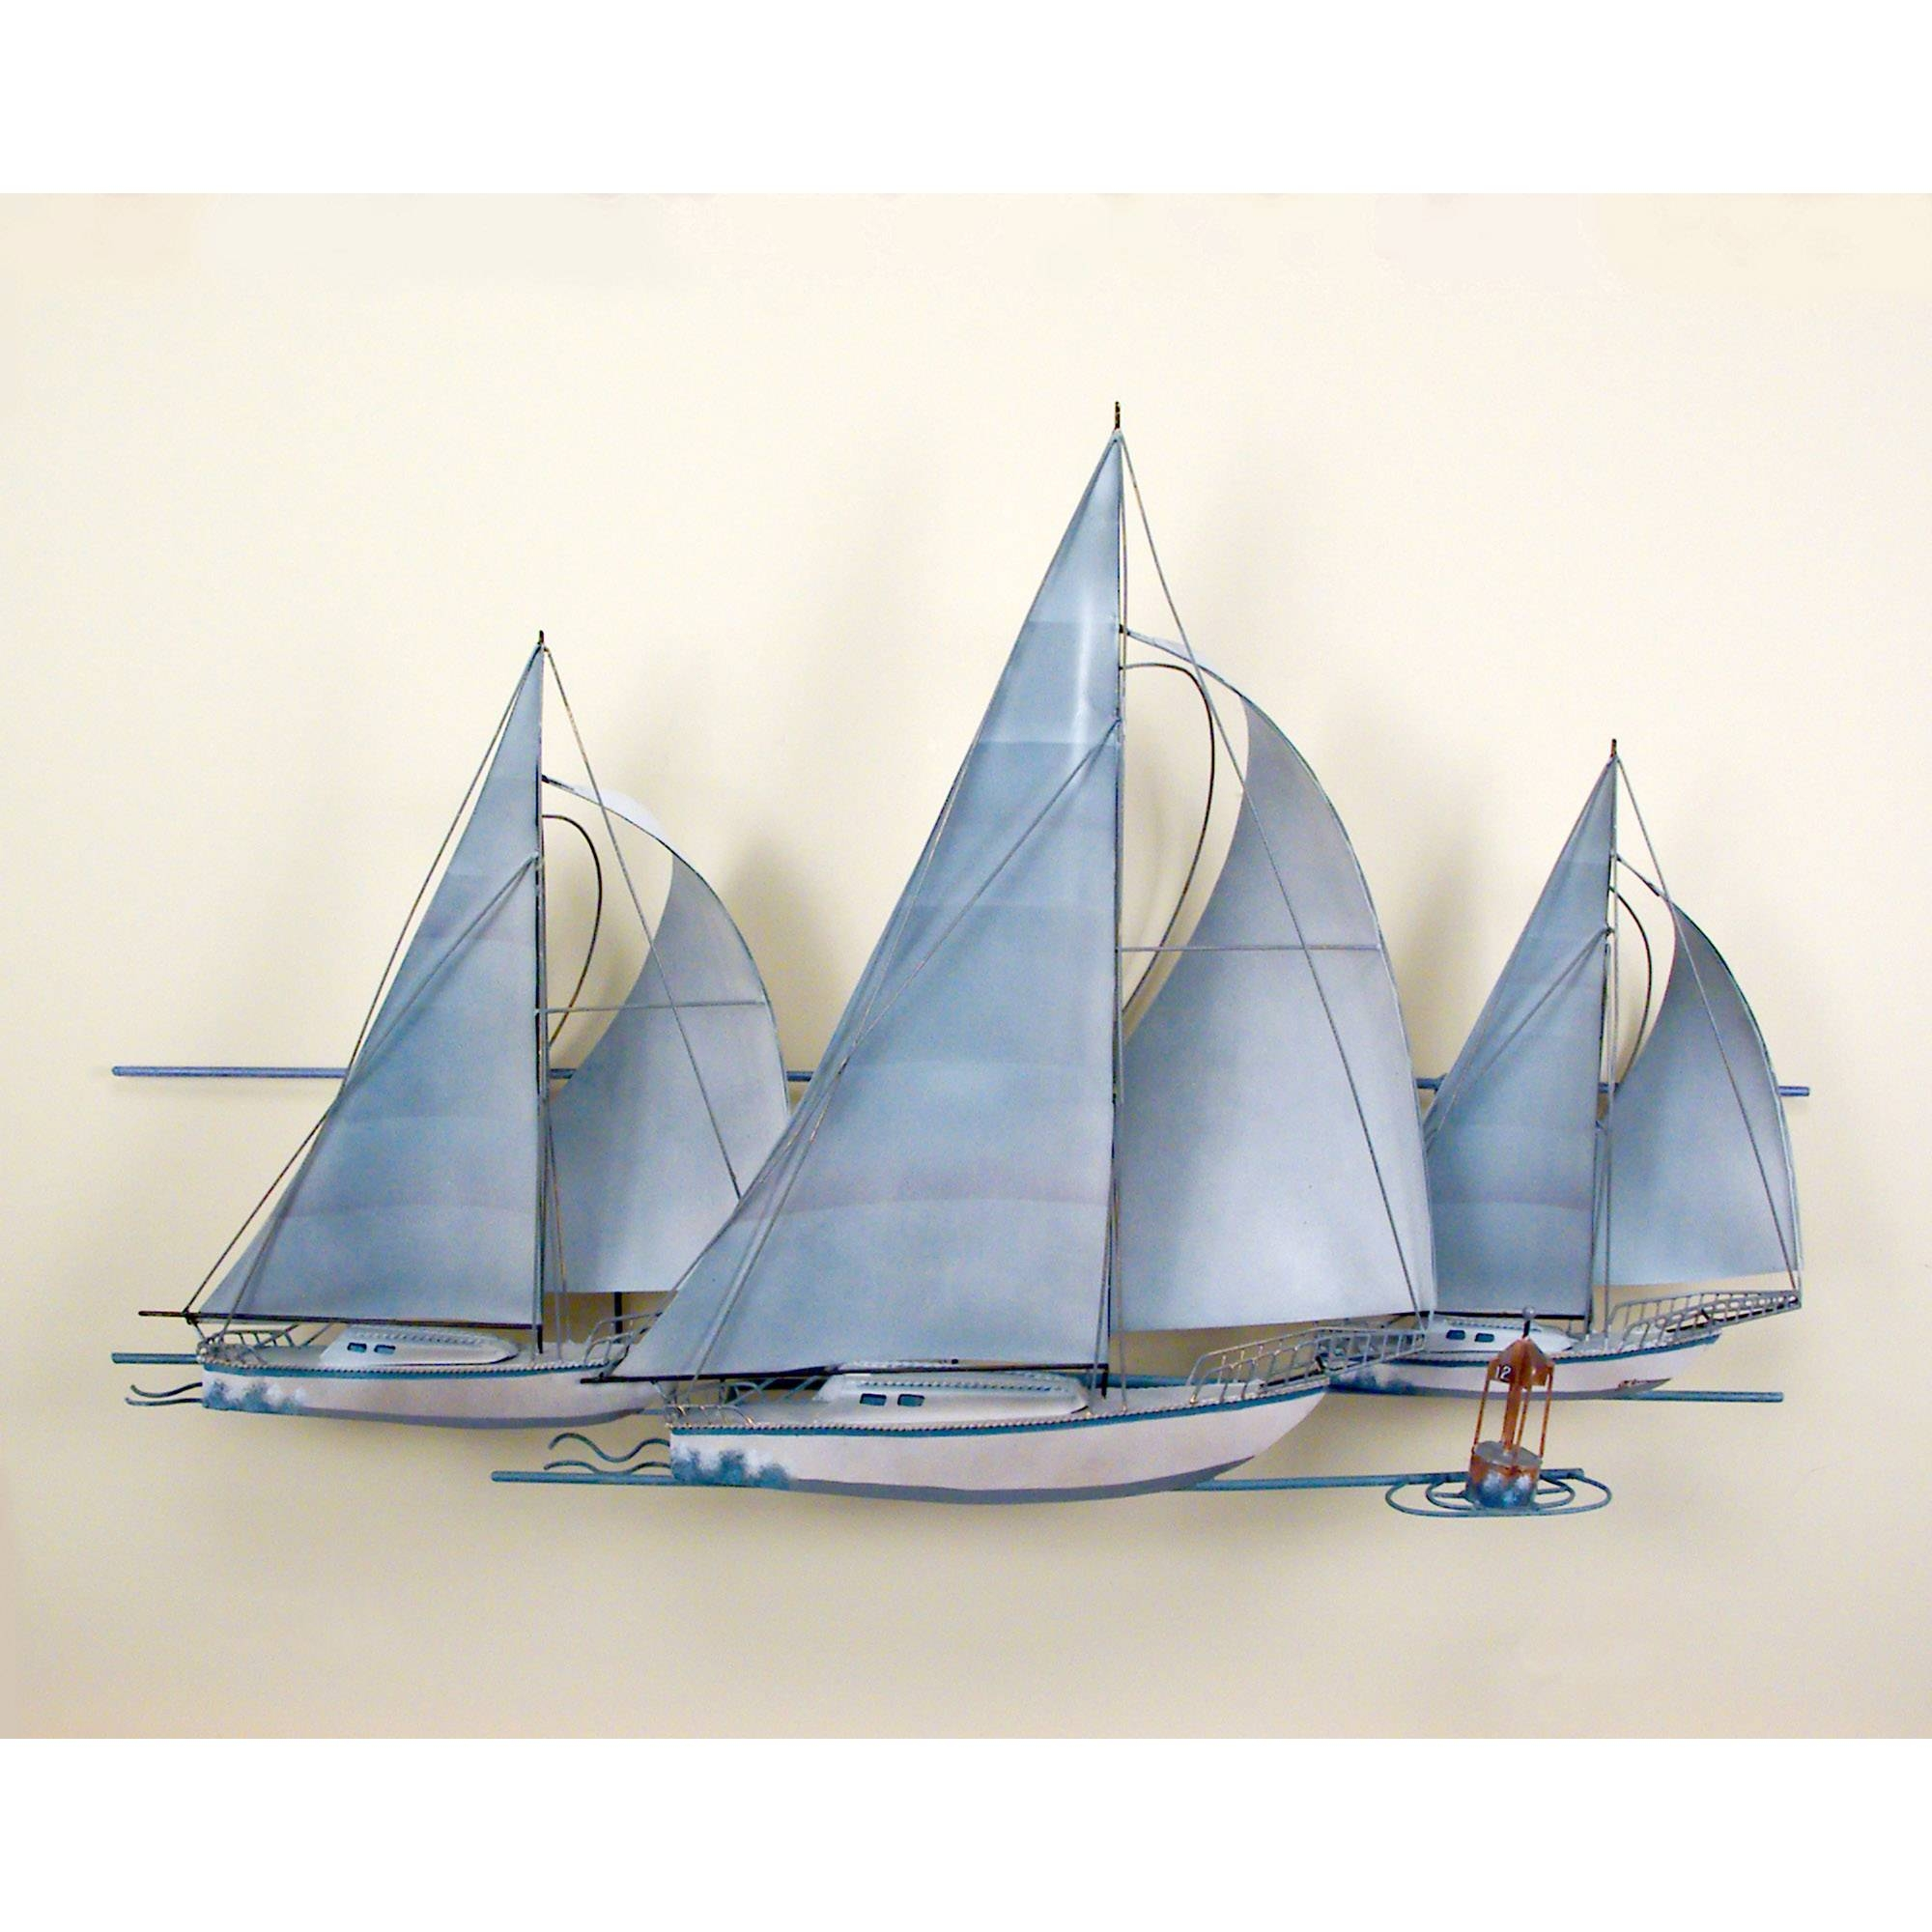 At The Races,three Sail Boats, Race, Wall Art, Wall Hanging With Best And Newest Metal Sailboat Wall Art (View 10 of 30)